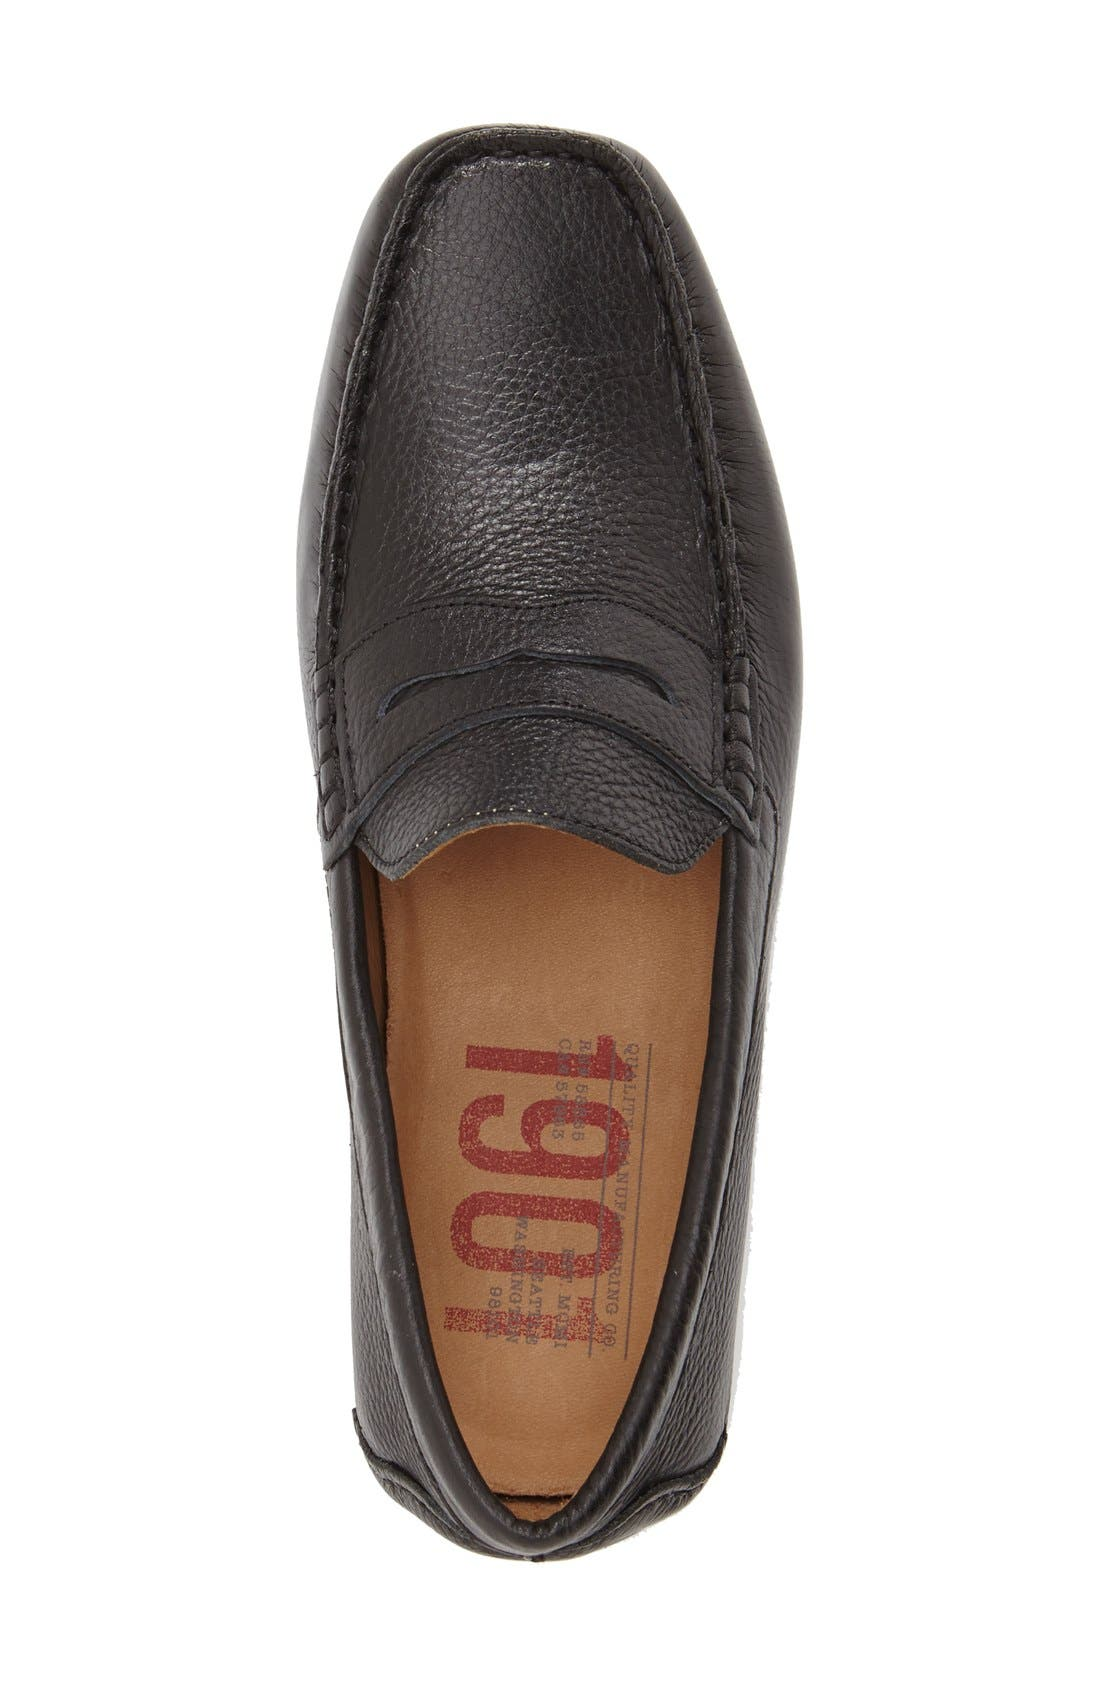 Alternate Image 3  - 1901 'Bermuda' Penny Loafer (Men)